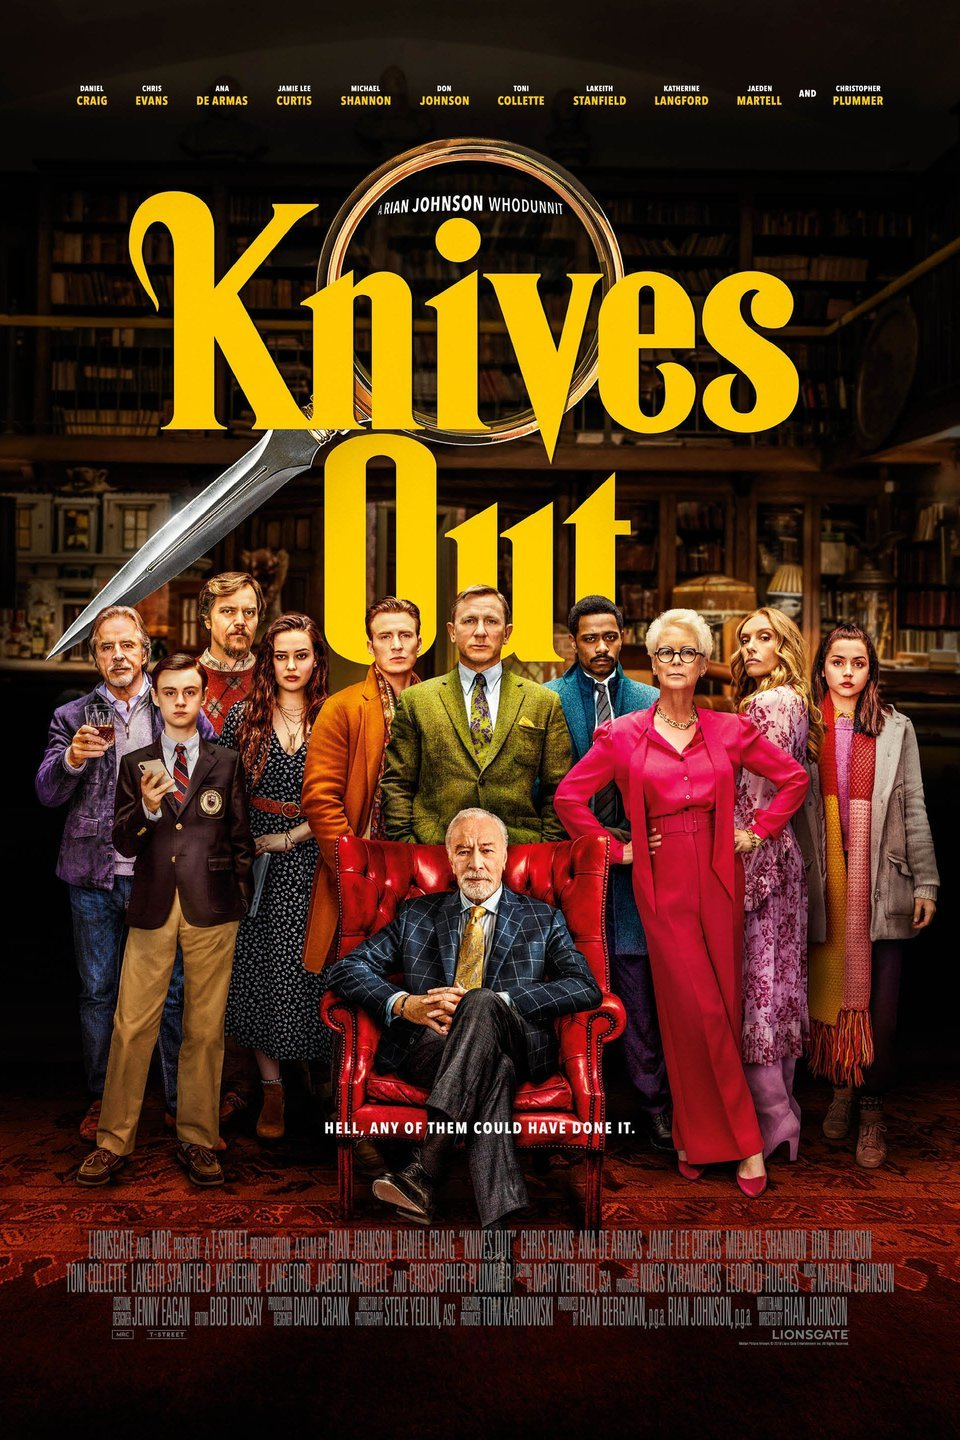 Movie poster image for 'KNIVES OUT'